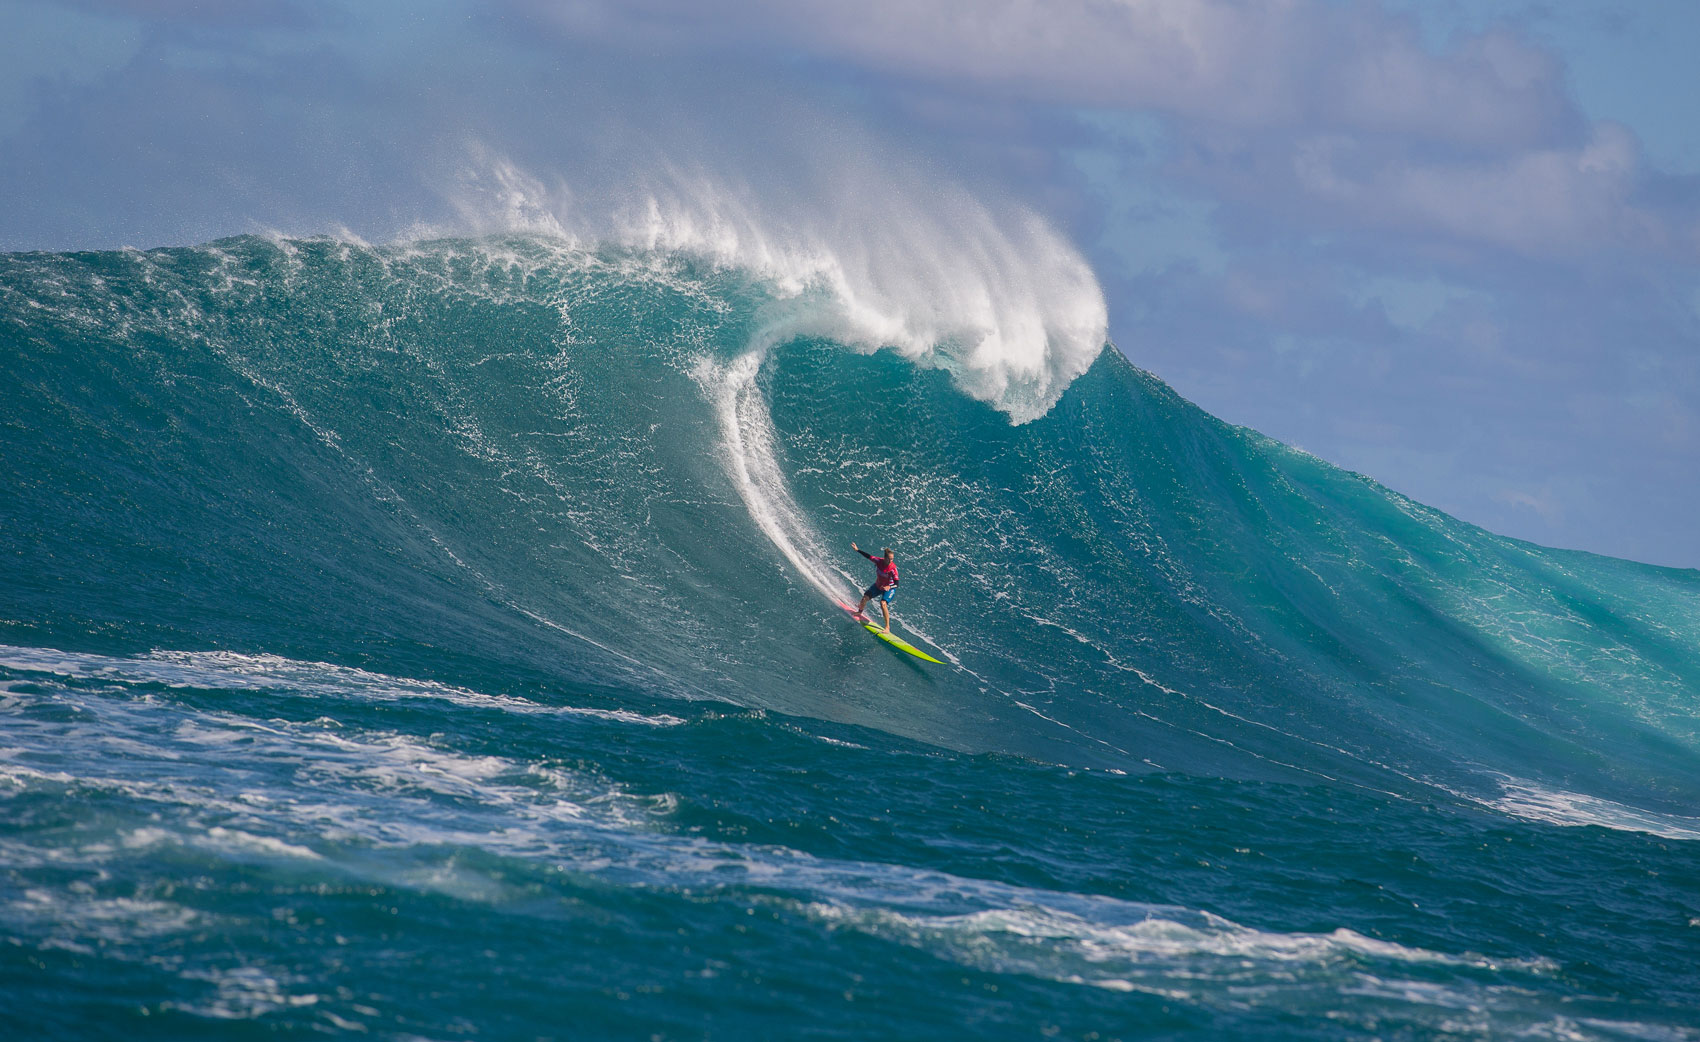 Paige Alms crowned winning of the inaugural Women's Big Wave World Tour Event. Photo: WSL